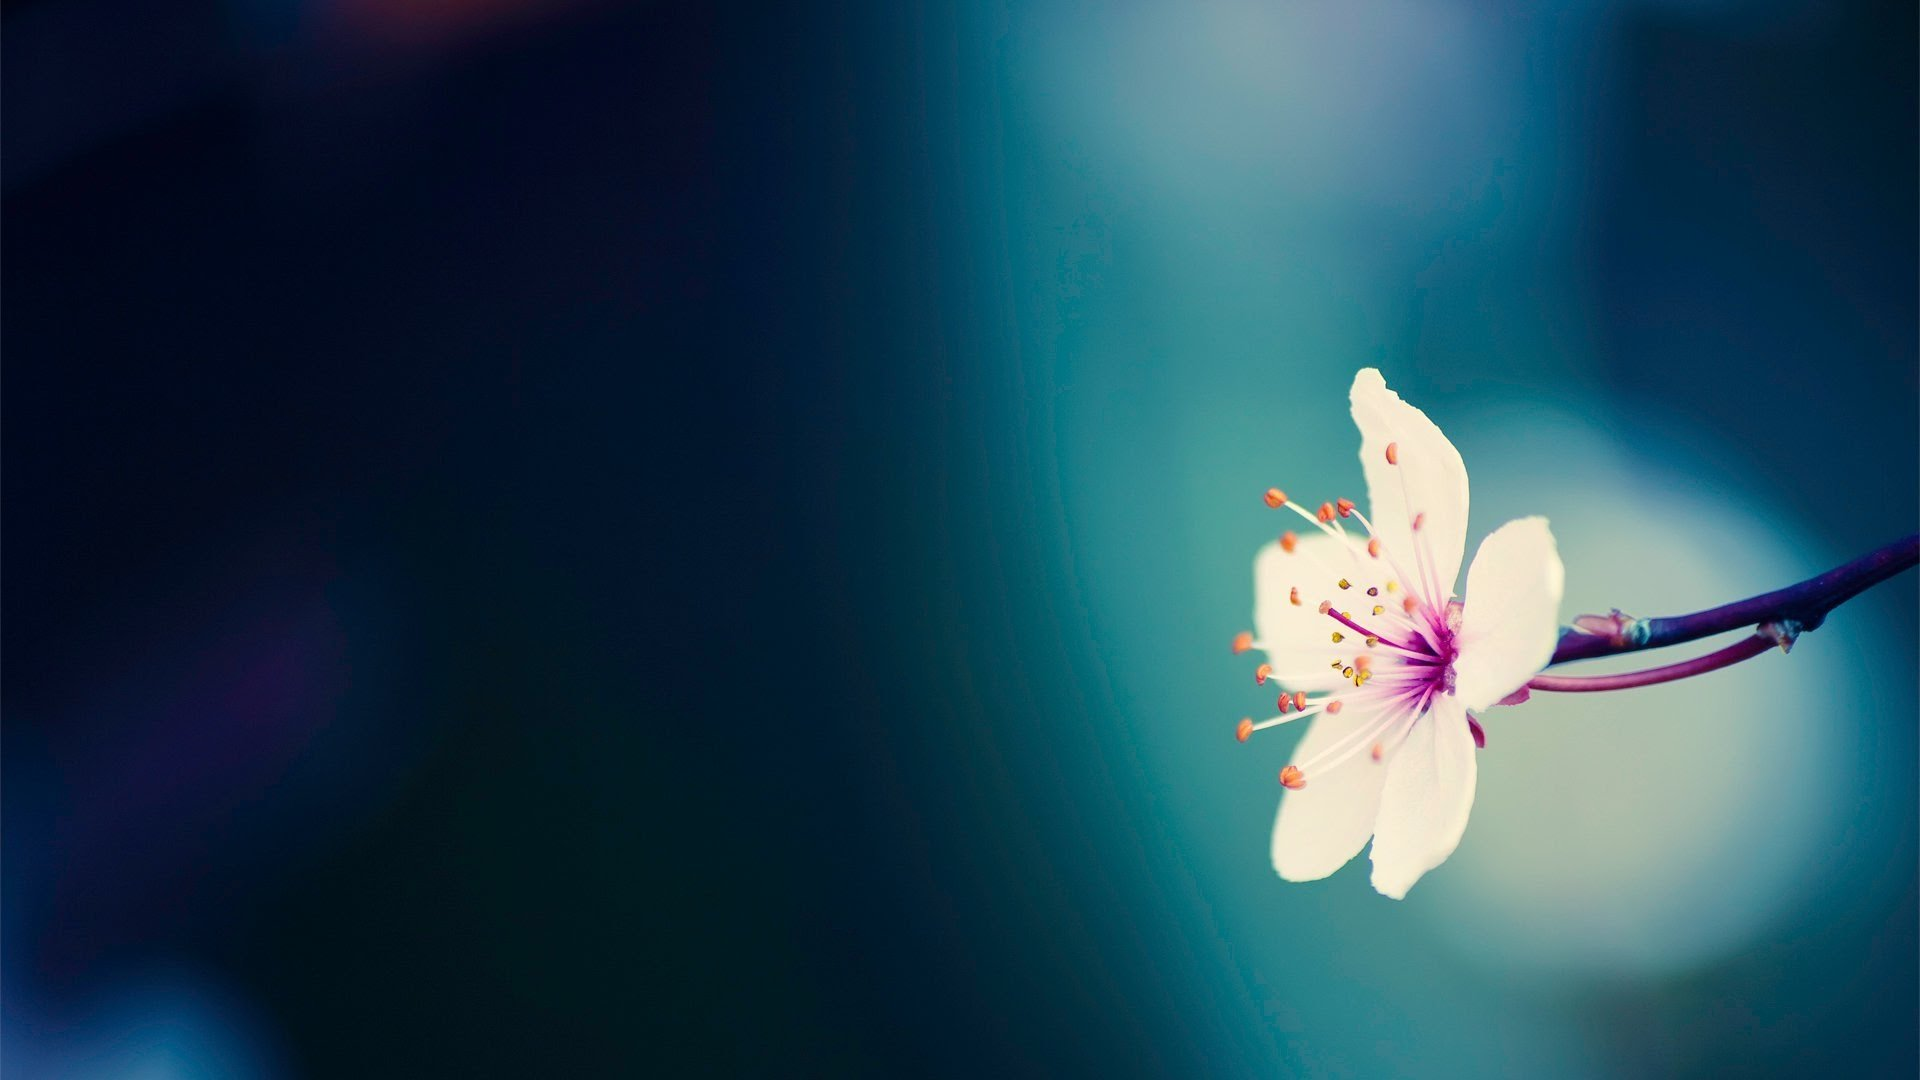 177-spring-background